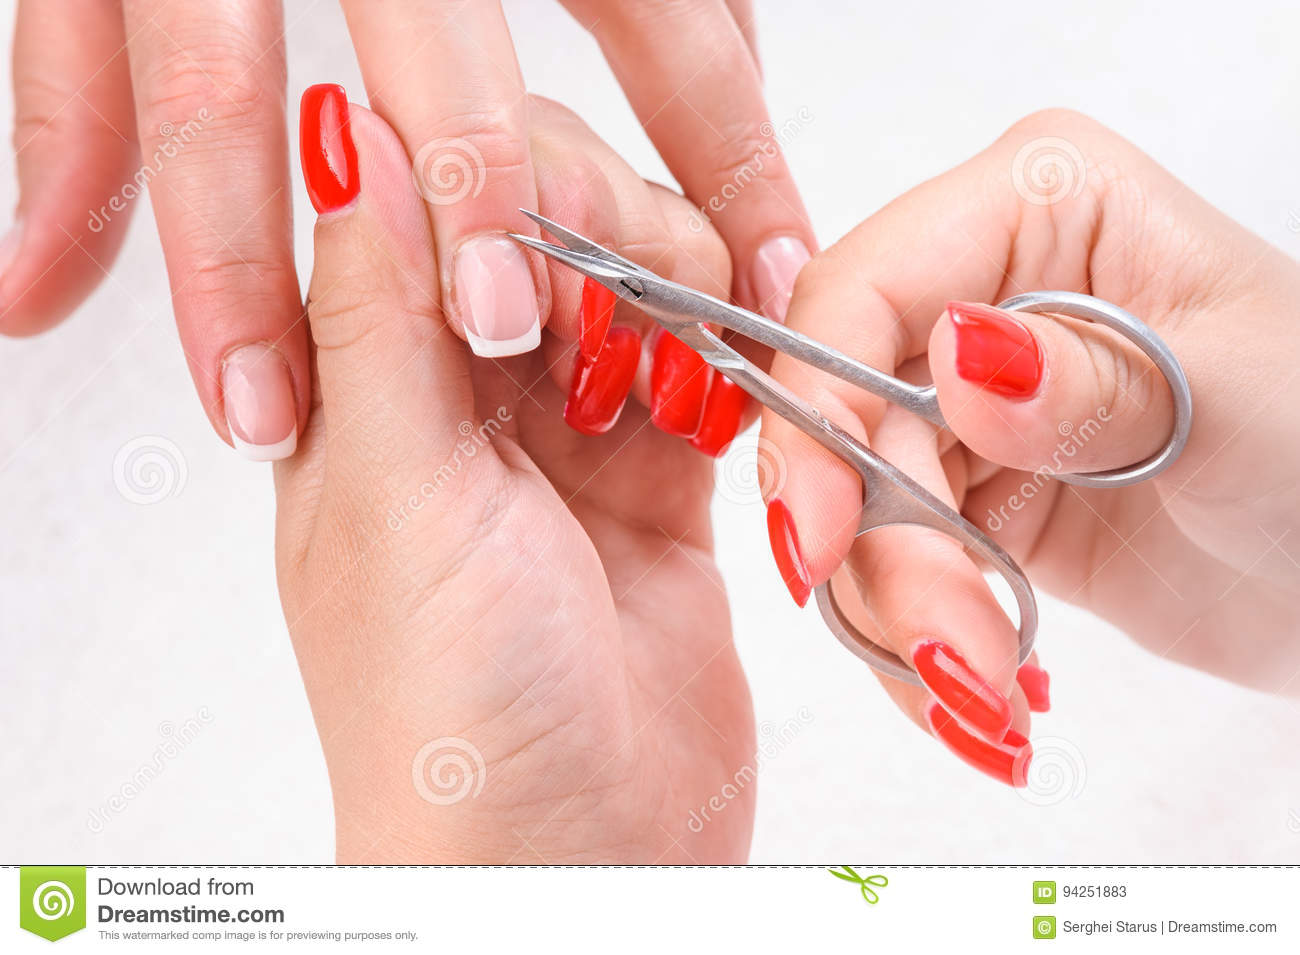 Cuticles Cutting With Scissors Stock Image - Image of luxury, hands ...